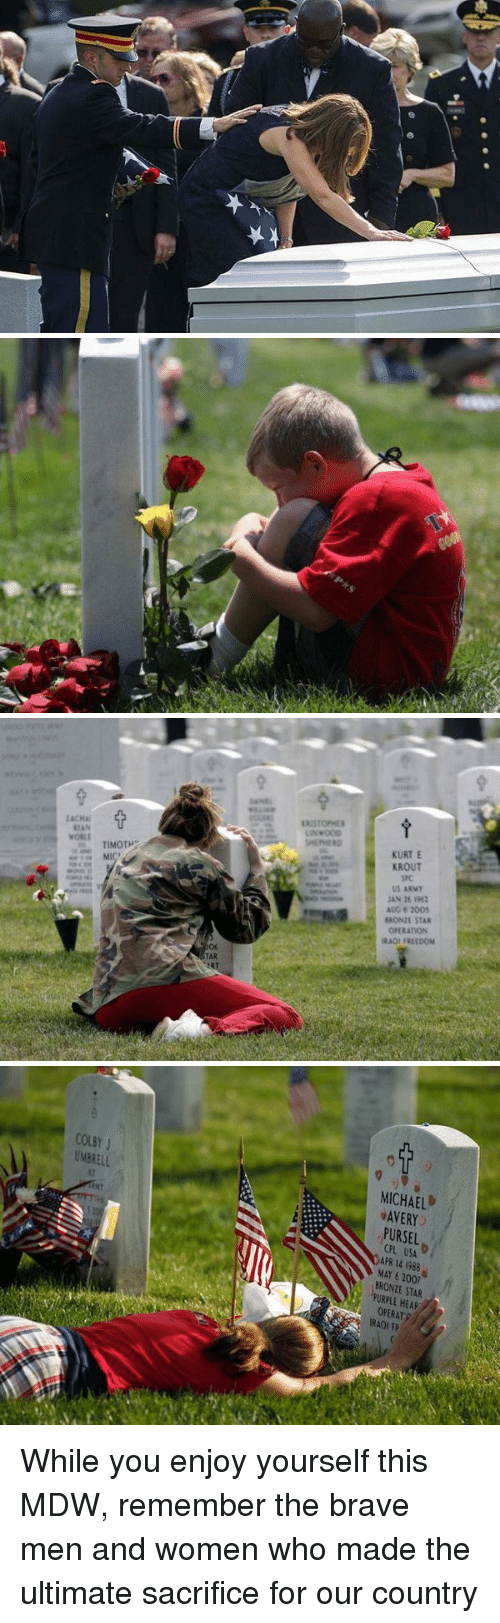 Memes, 🤖, and Us Army: TIMOTP  TAR  KURT E  KROUT  SRC  US ARMY  JAN 16  AUG 2005  BRONIE STAR  ORATION  RAO FREEDOM   COLEY  J  UMERELL  MICHAEL  AVERY  PURSEL  APR 14 1988  MAY 6 BRONTE STAR  PURPLE HEAR  OPERAT  IRA0l EP While you enjoy yourself this MDW, remember the brave men and women who made the ultimate sacrifice for our country